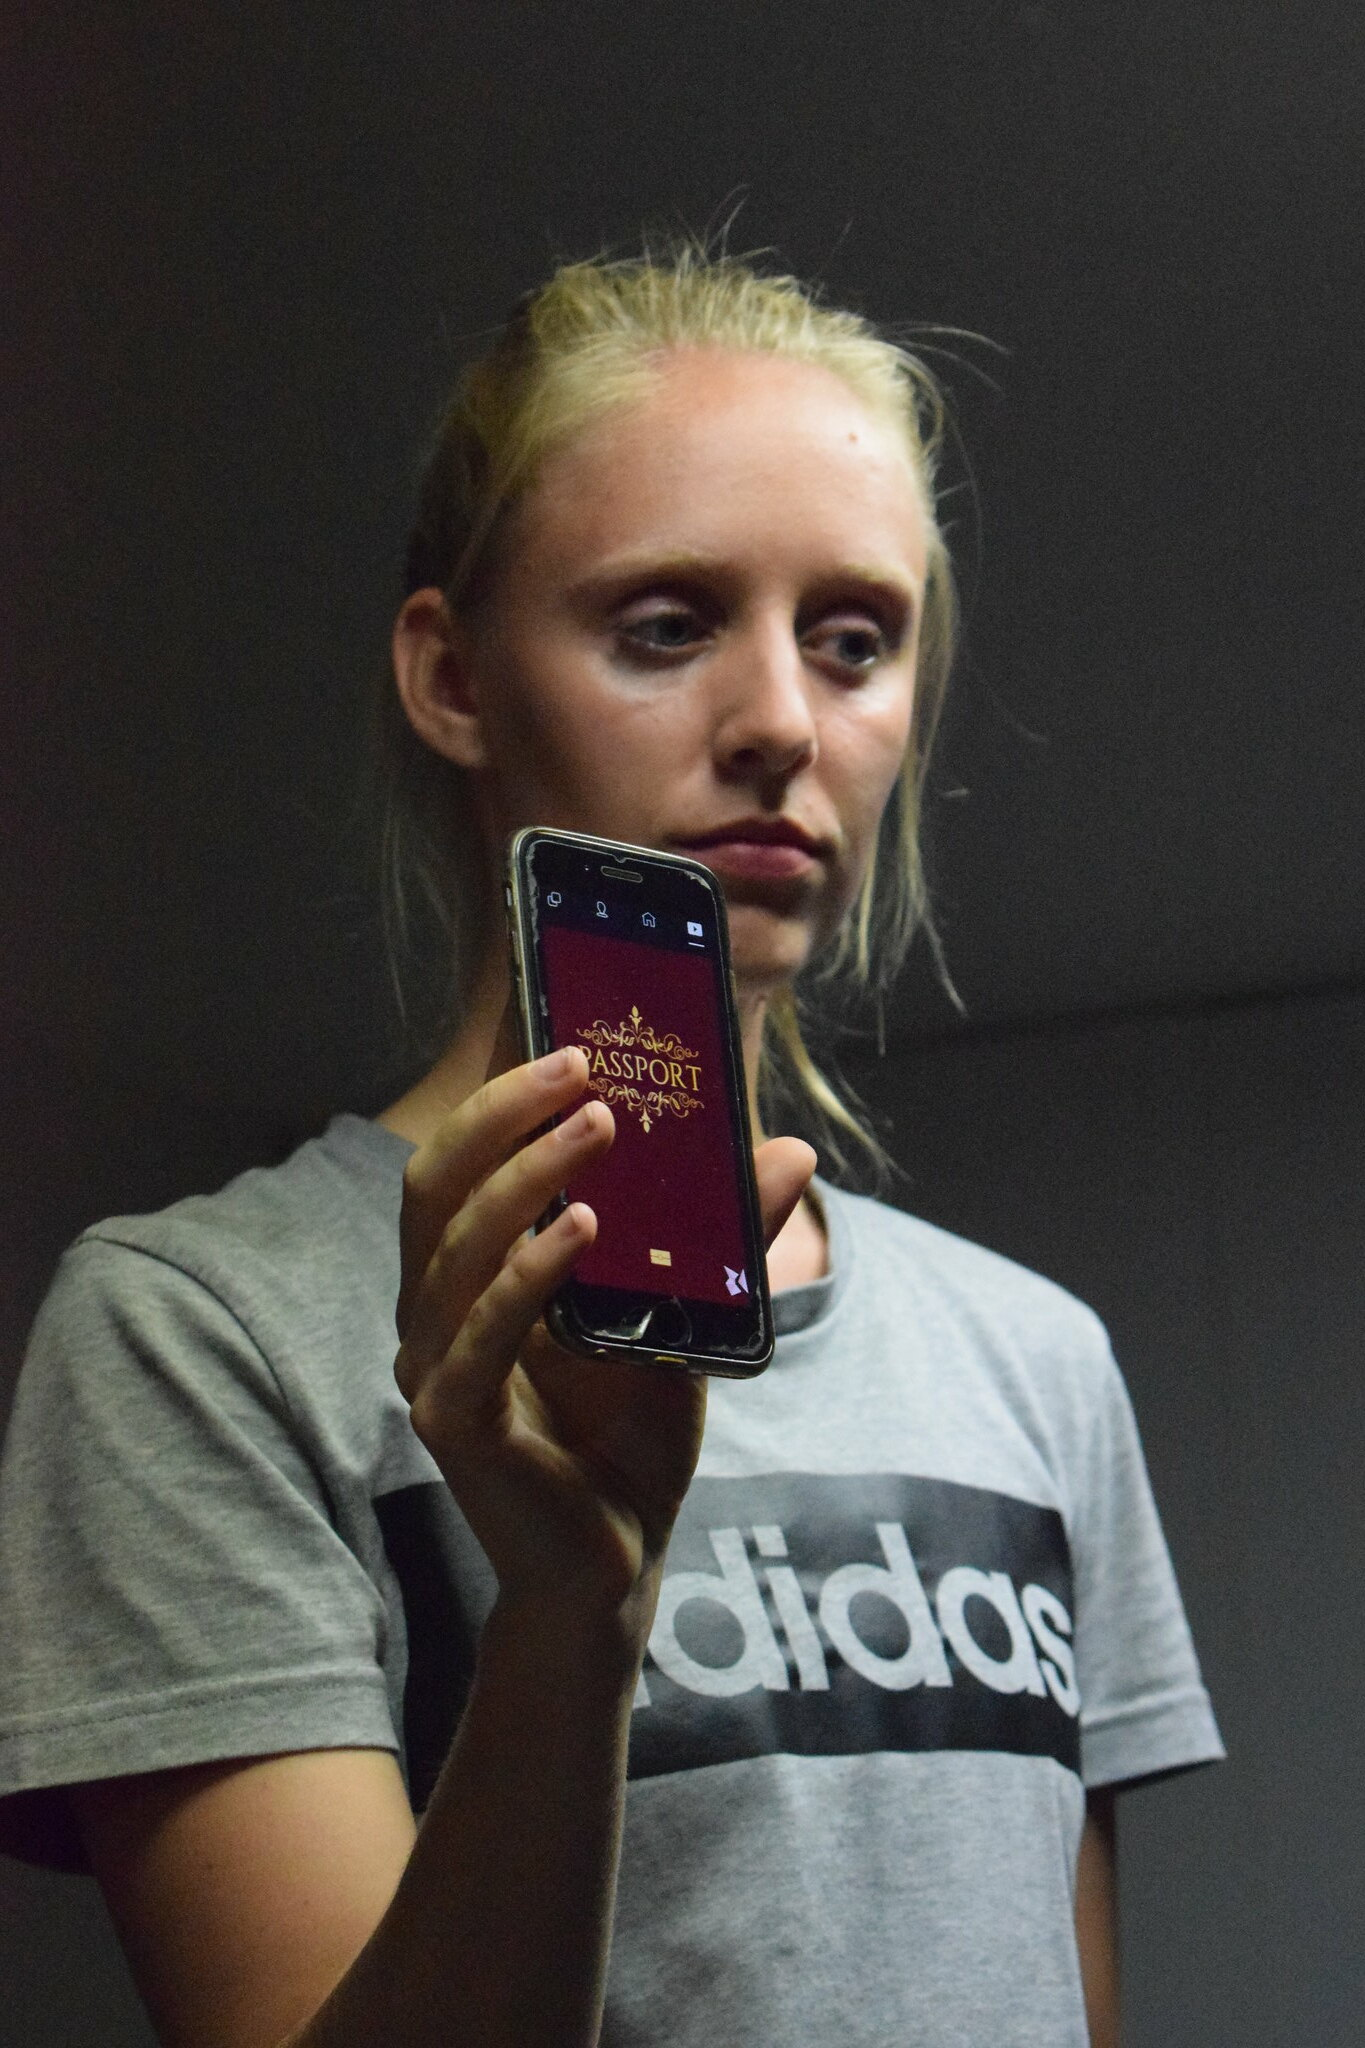 People would be receive fake passports on their mobiles